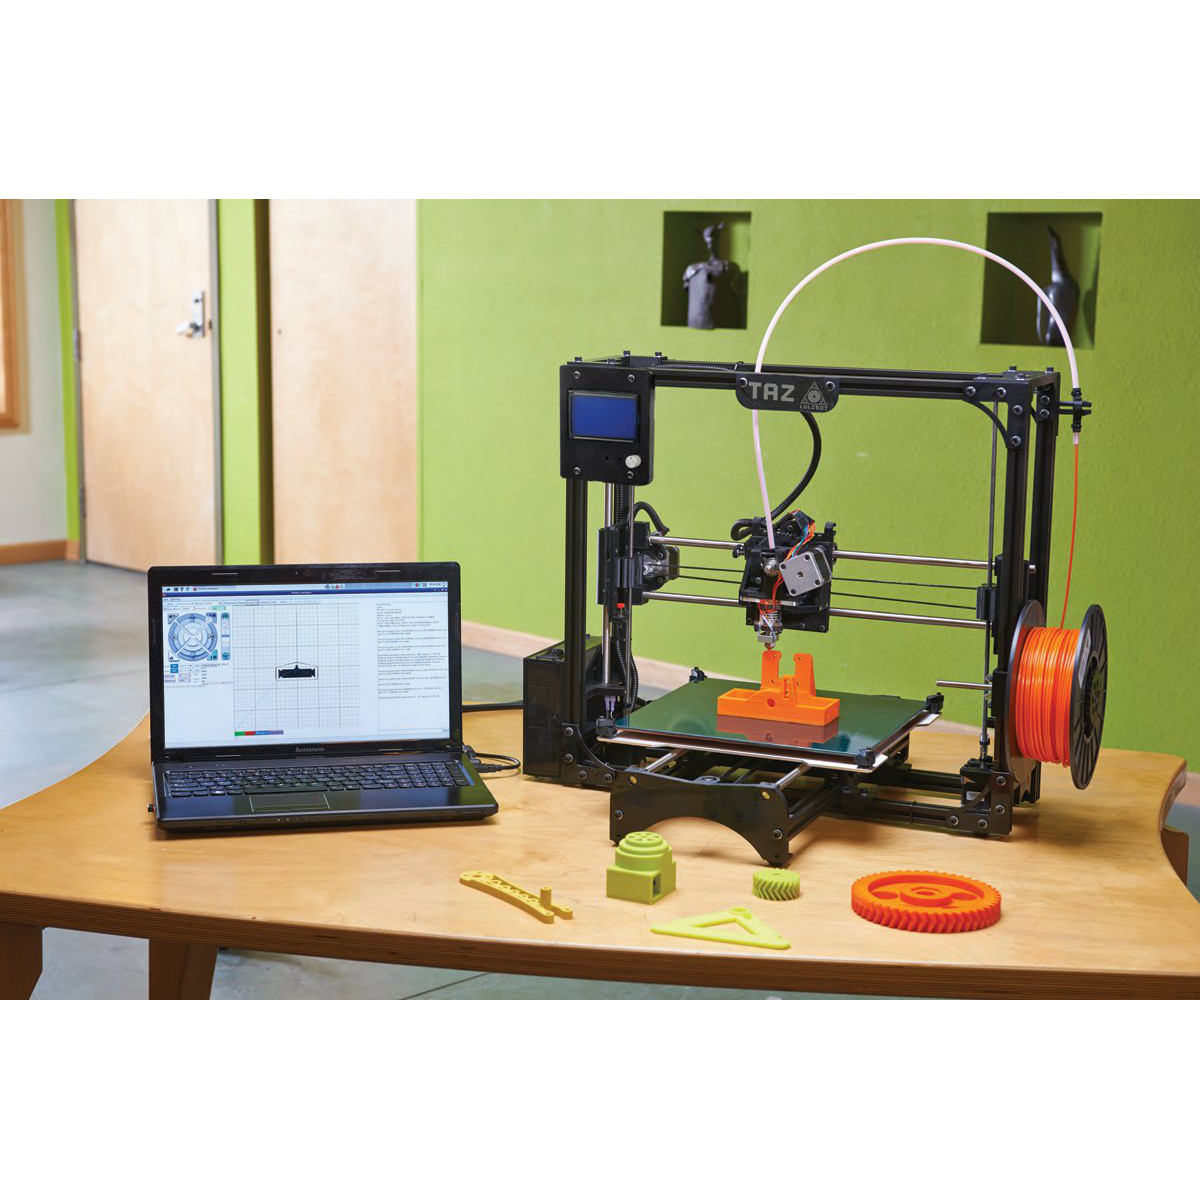 TAZ 2.0 3D printer with printed objects